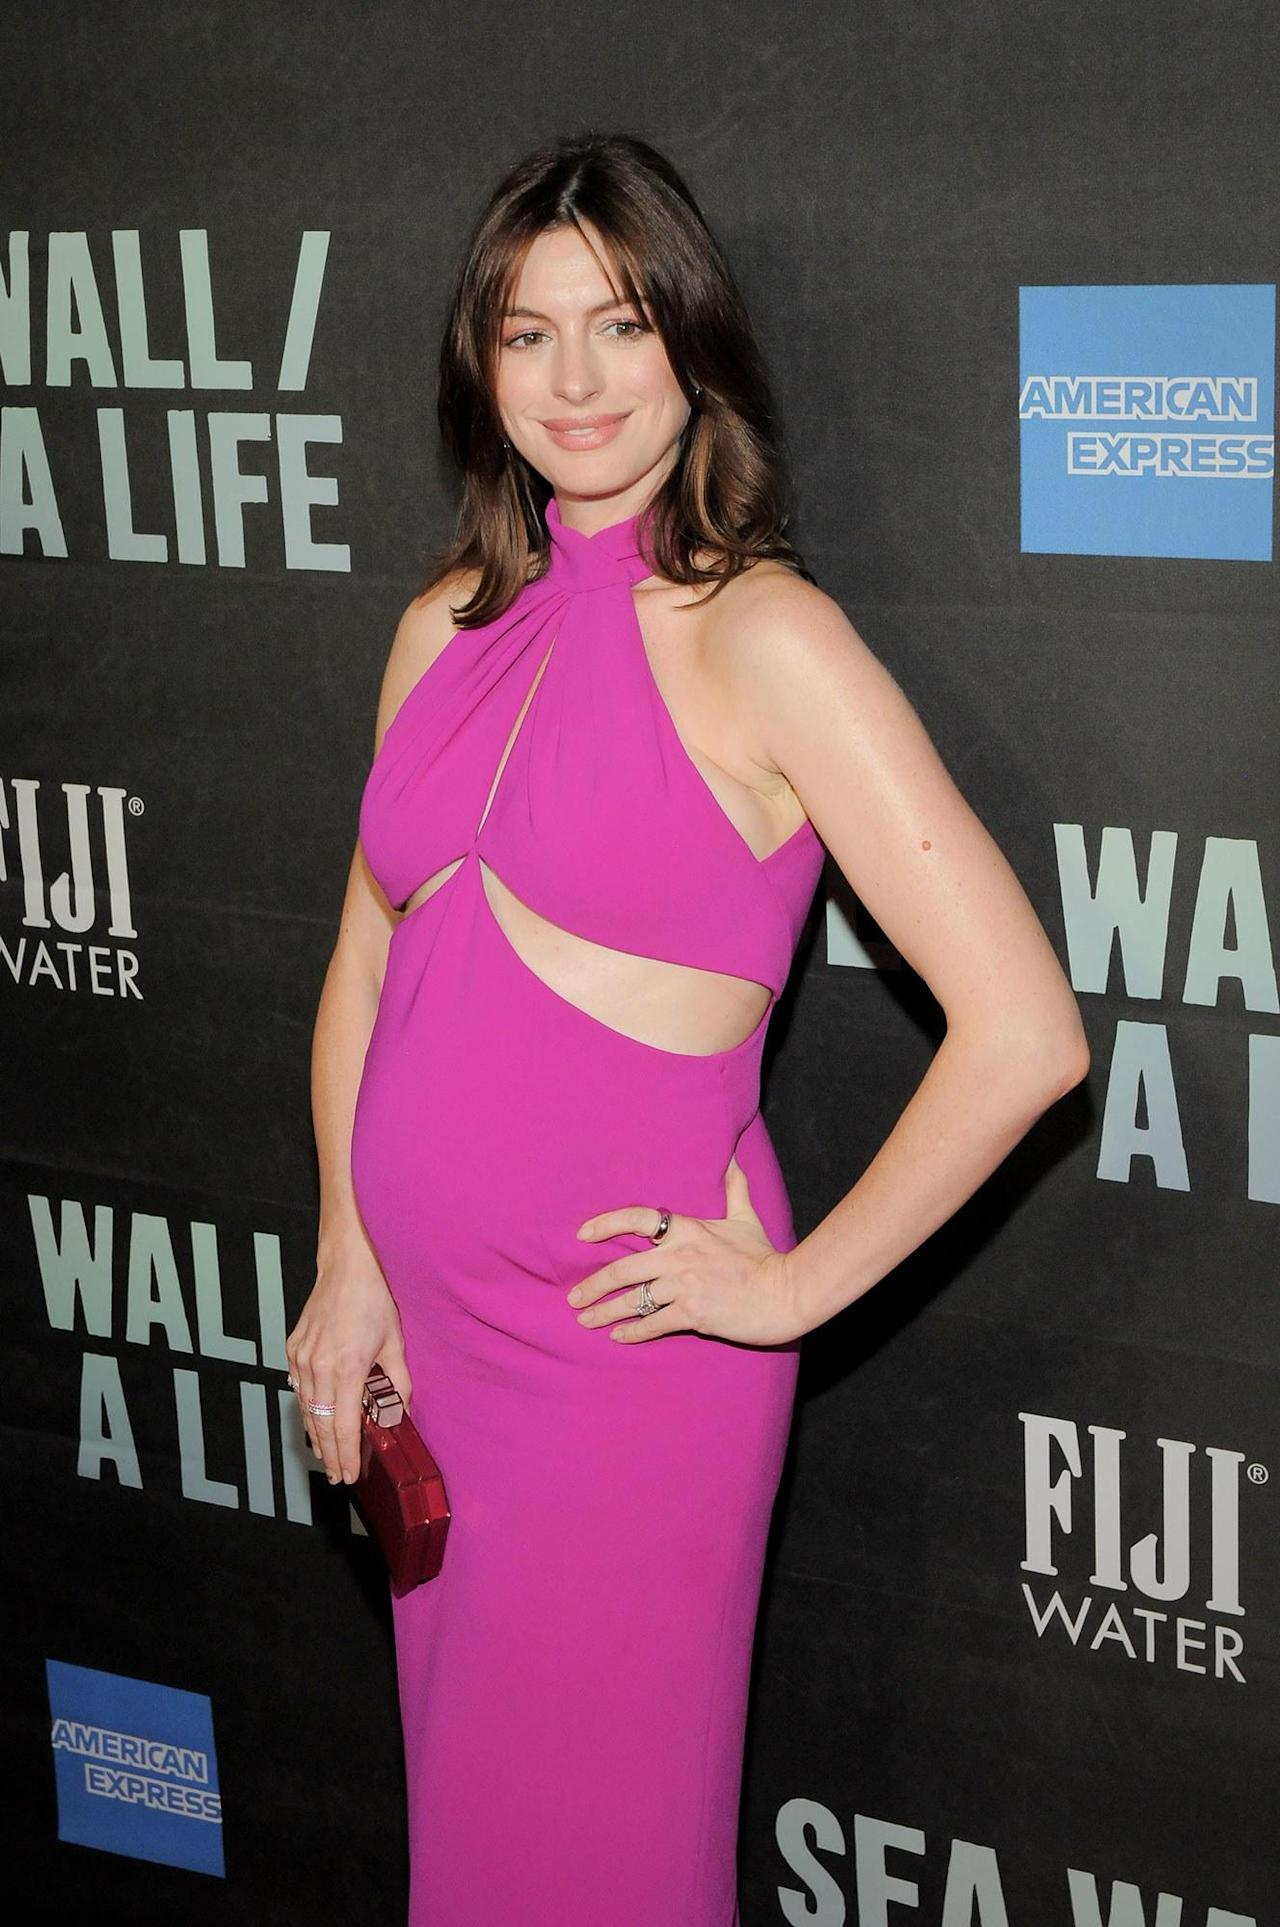 Anne Hathaway Shows Off French Girl Hair—And a Growing Baby Bump